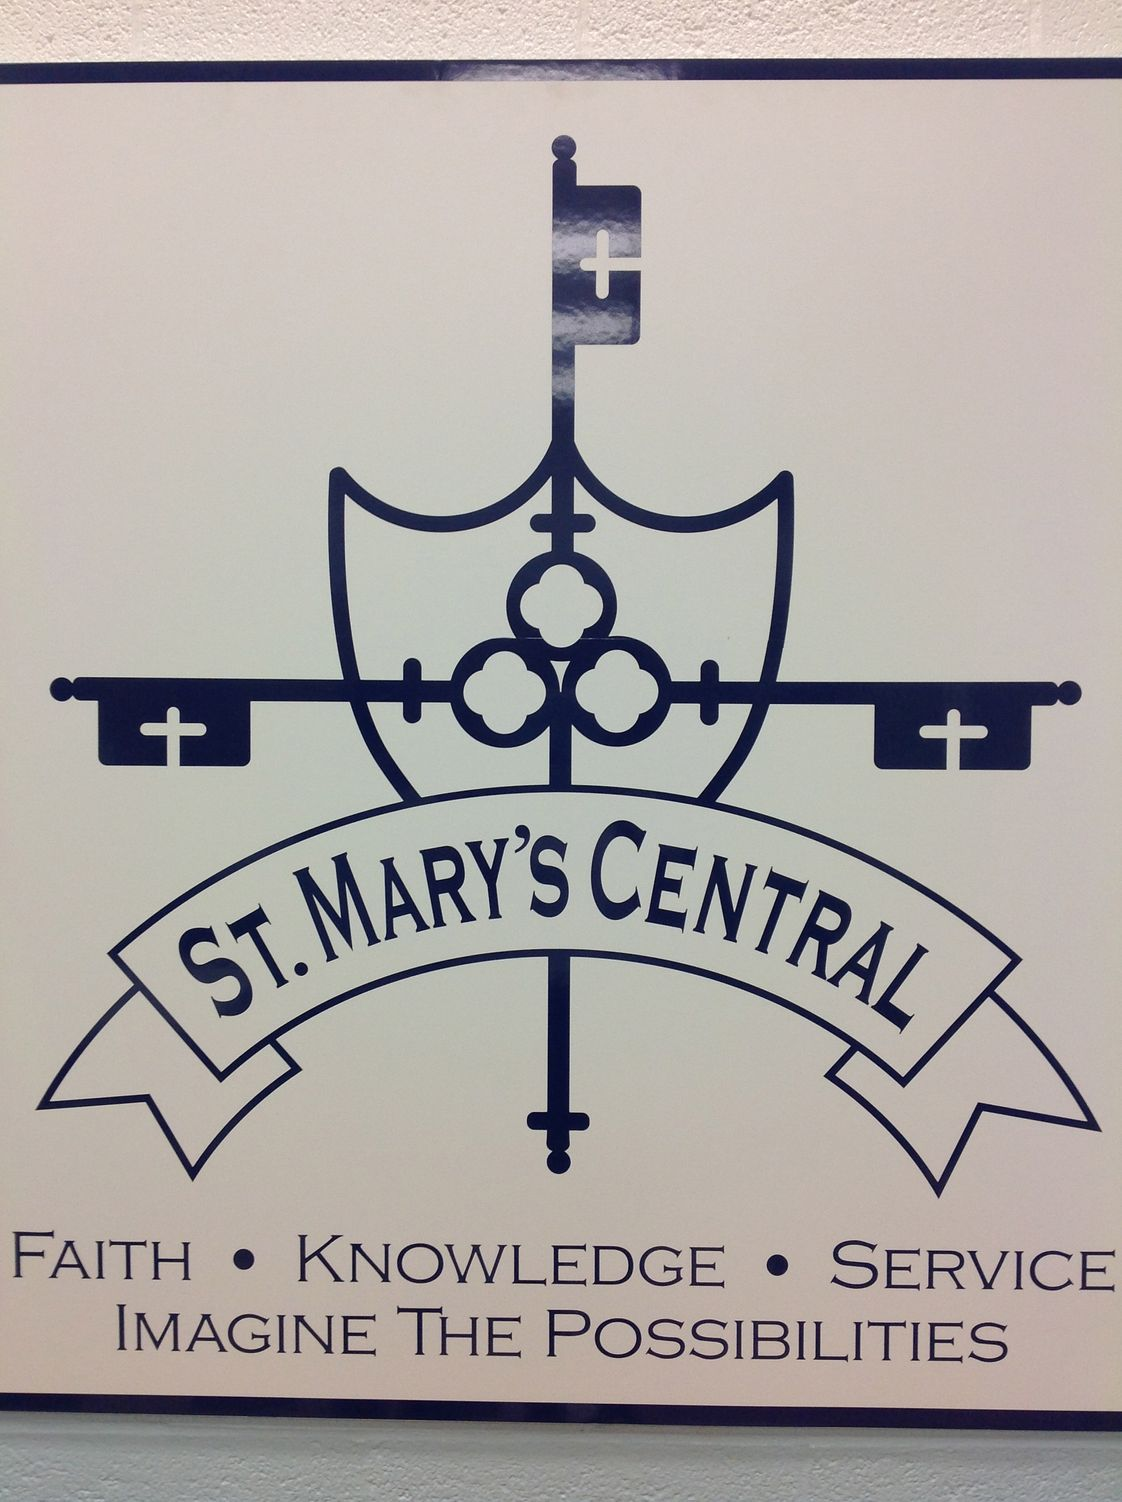 St. Mary's Central School Photo